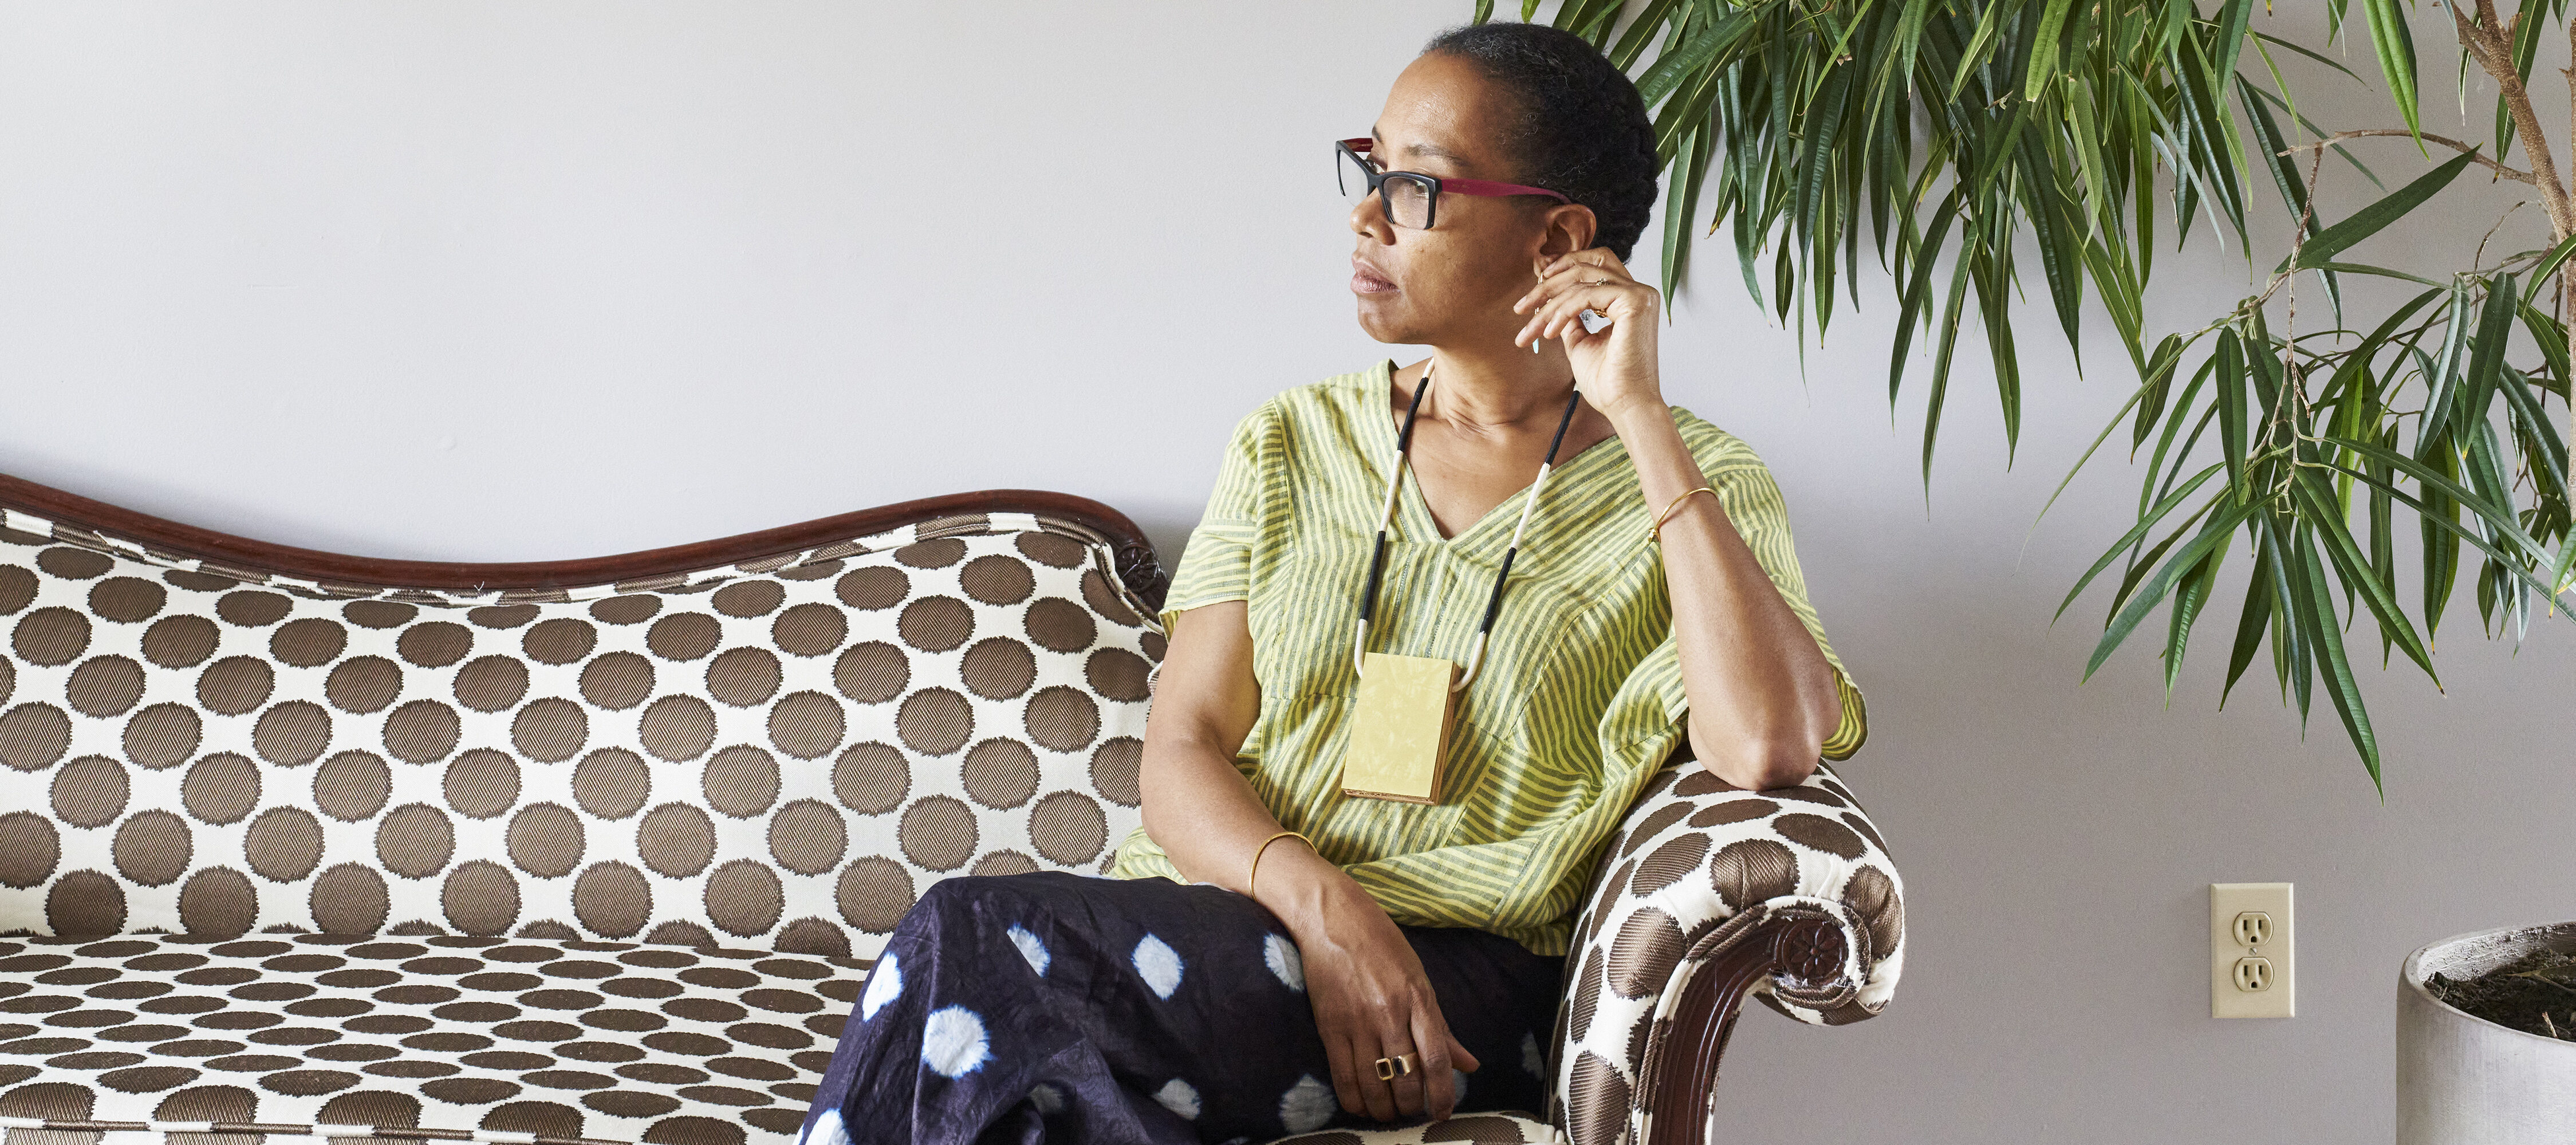 Sonya Clark calmly sits on a polka-dot couch against a white wall, next to a large plant. She is a medium-skinned adult woman with dark hair pulled back, looking to her right with her legs crossed. She wears a striped top, black pants with large white dots, glasses, and a necklace.